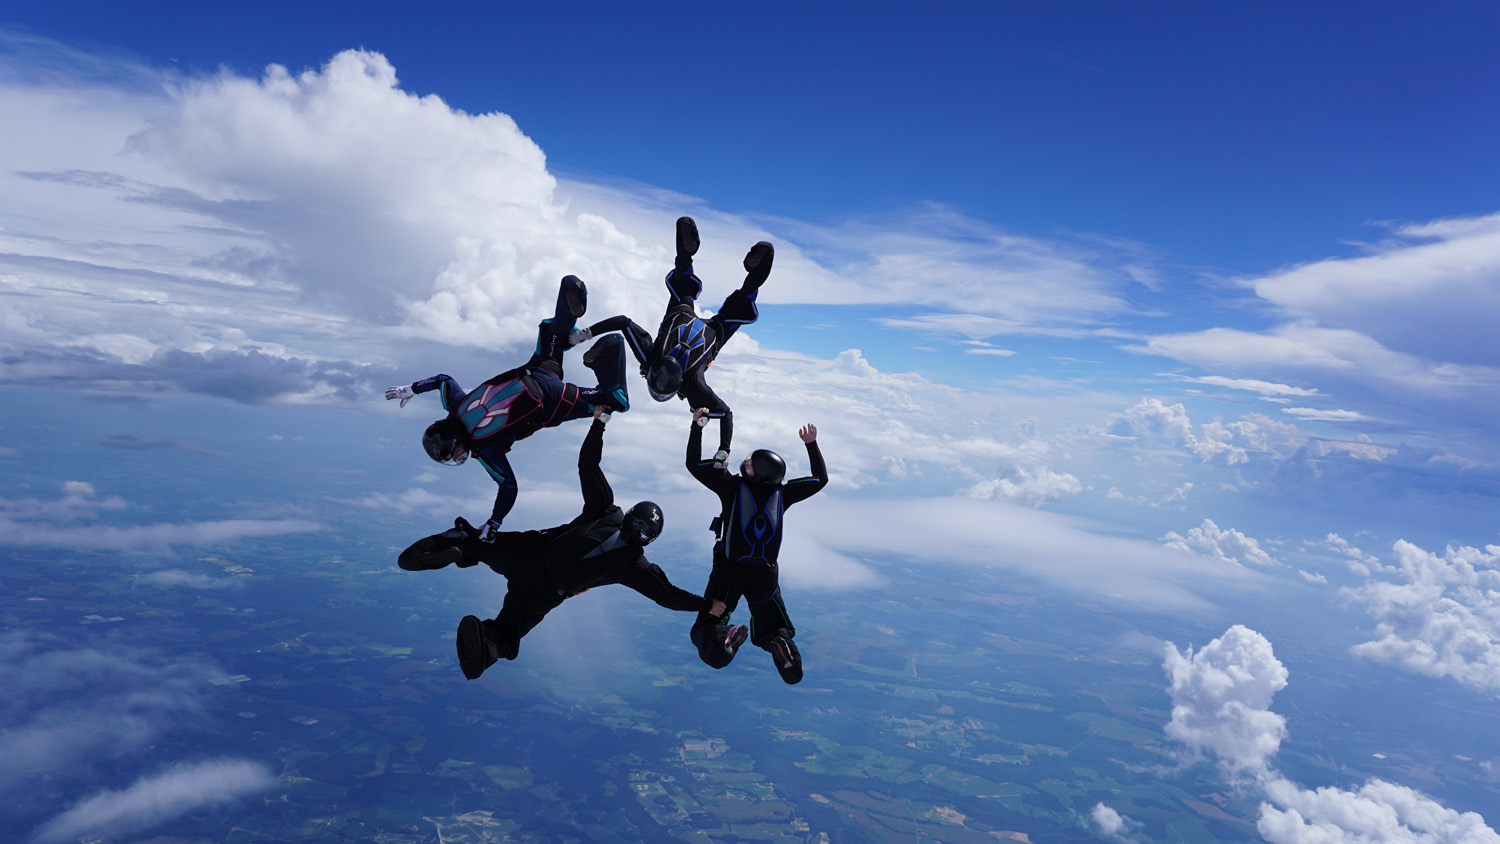 Gifts For Organizers >> Formation Skydiving Photos | Skydive Paraclete XP